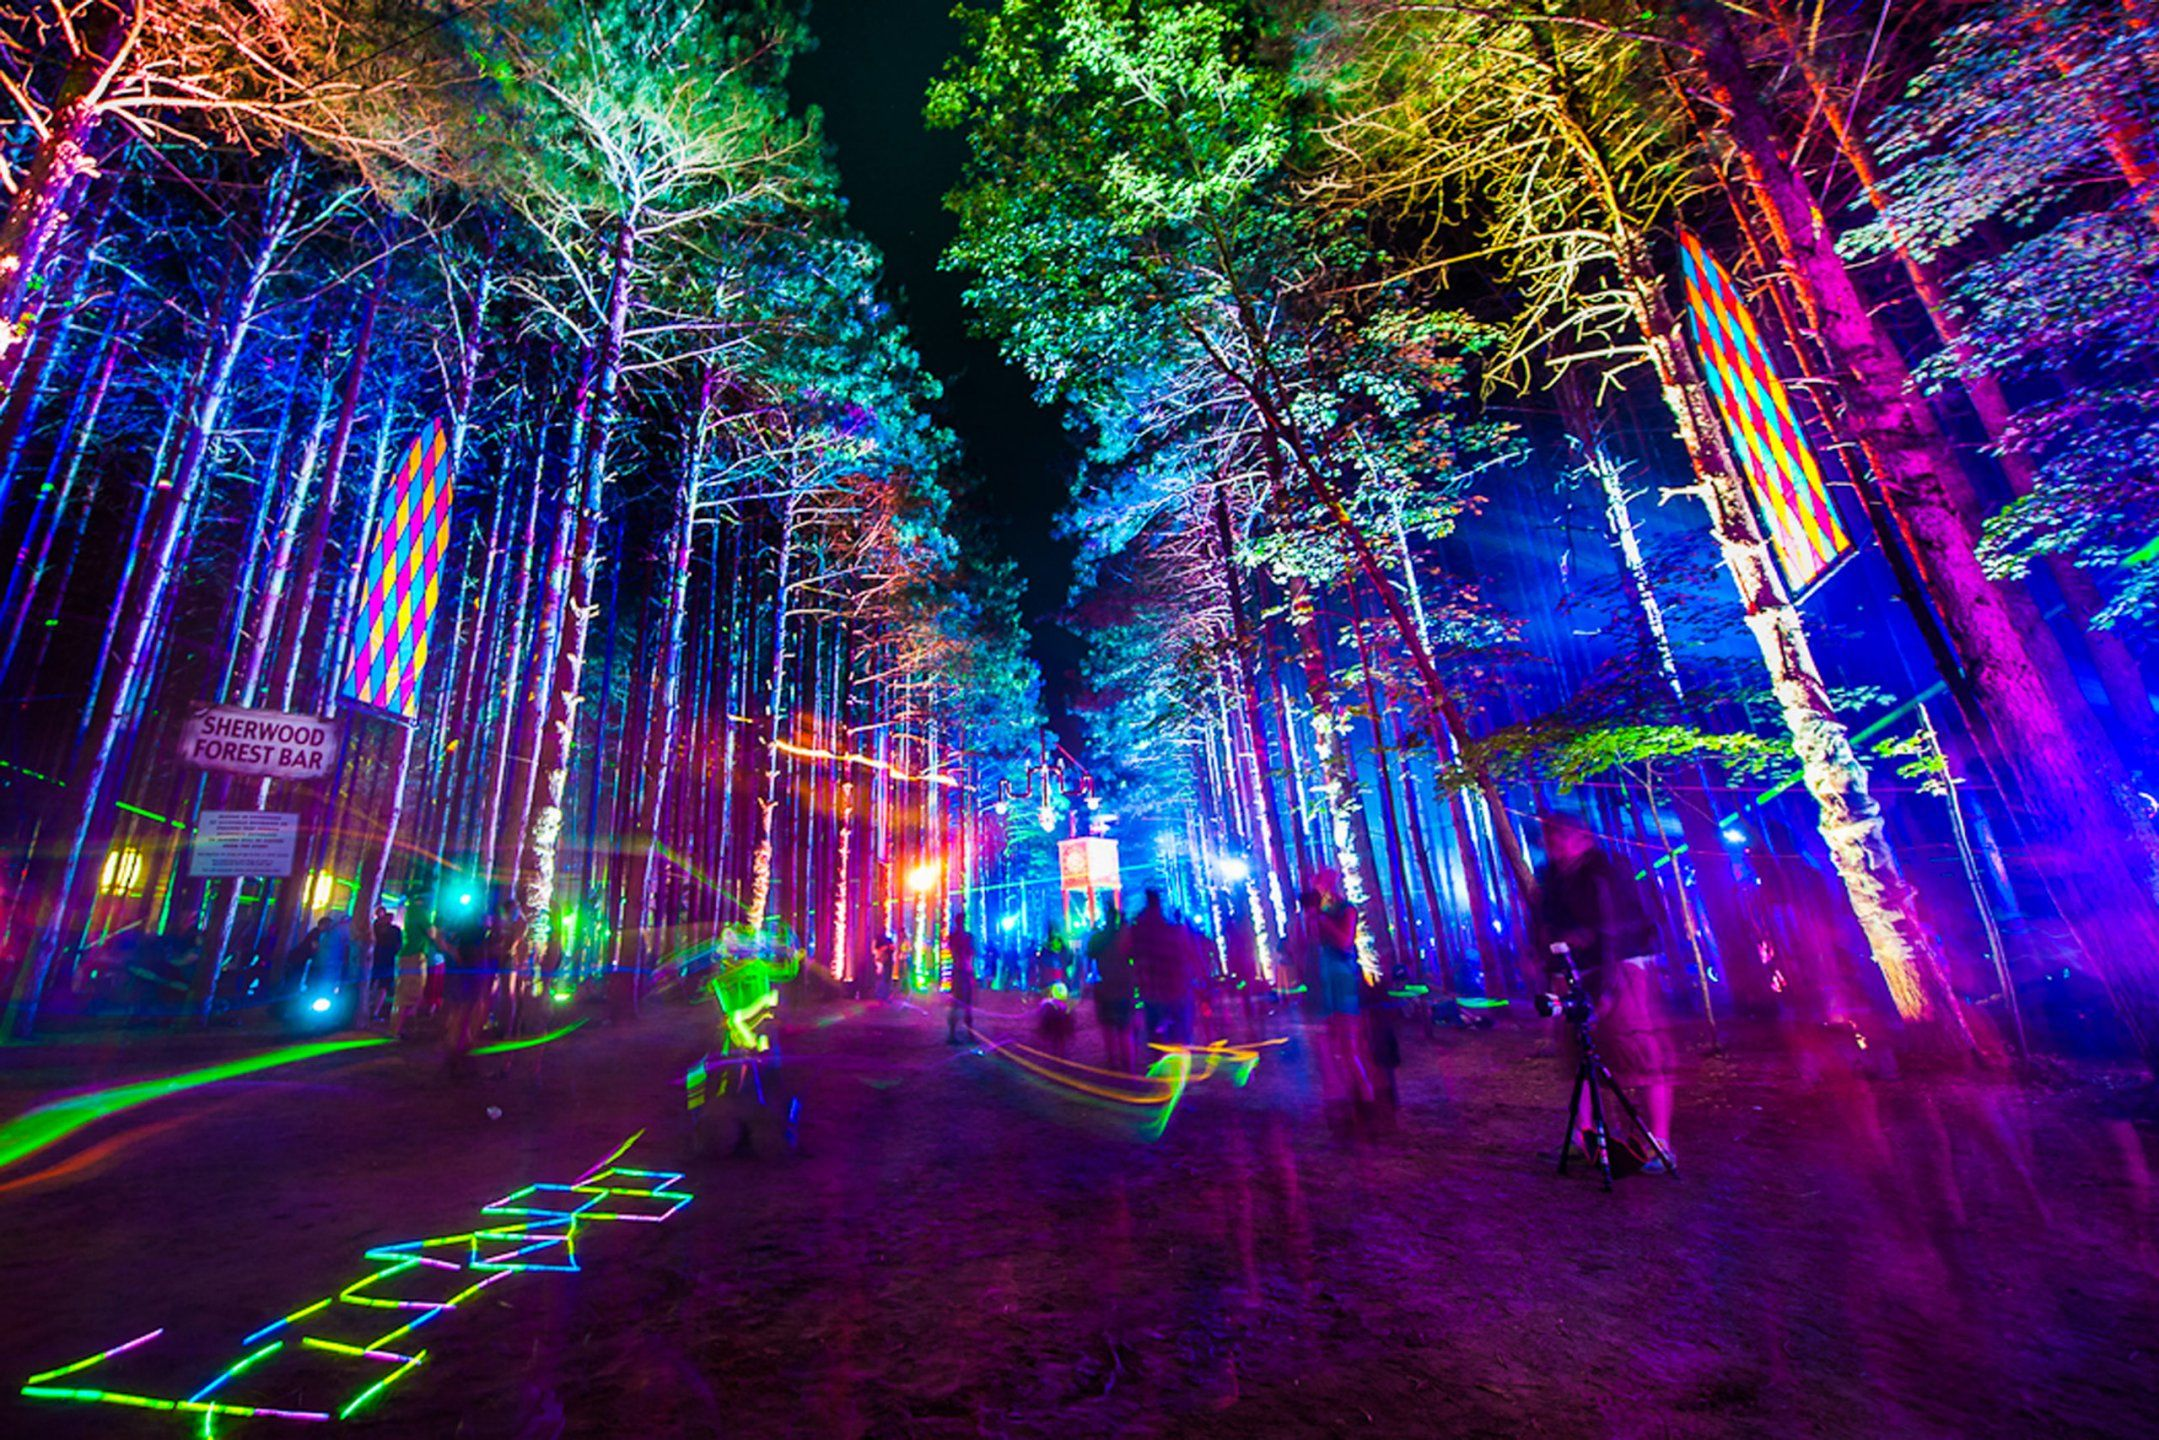 Electric Forest music festival in Rothbury, Michigan/WOULD LOVE TO GO  FOR THIS AND THEN GO ALL OVER TO DISCOVER NEW THINGS AND PLACES